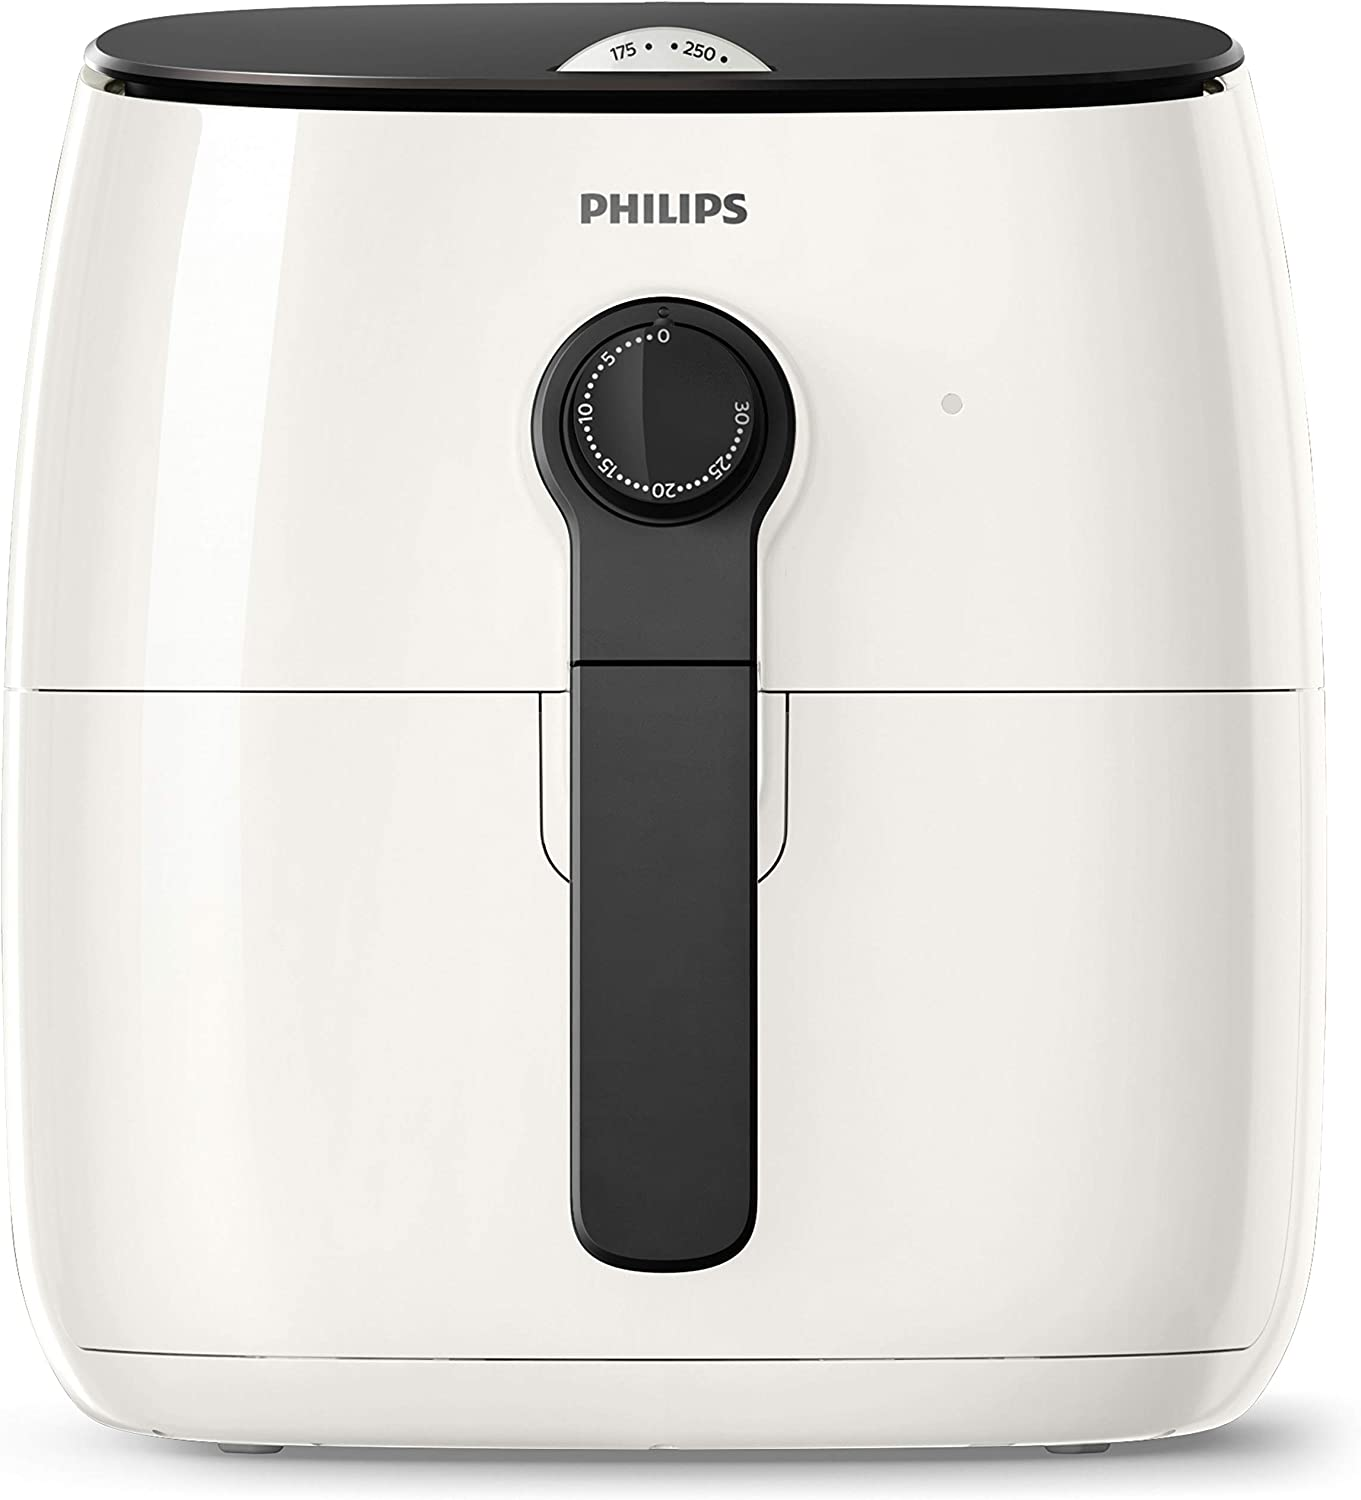 Philips Premium TurboStar 1.8lb/2.75qt Airfryer - HD9721/06 (Latest Model 2020) (Analog White)